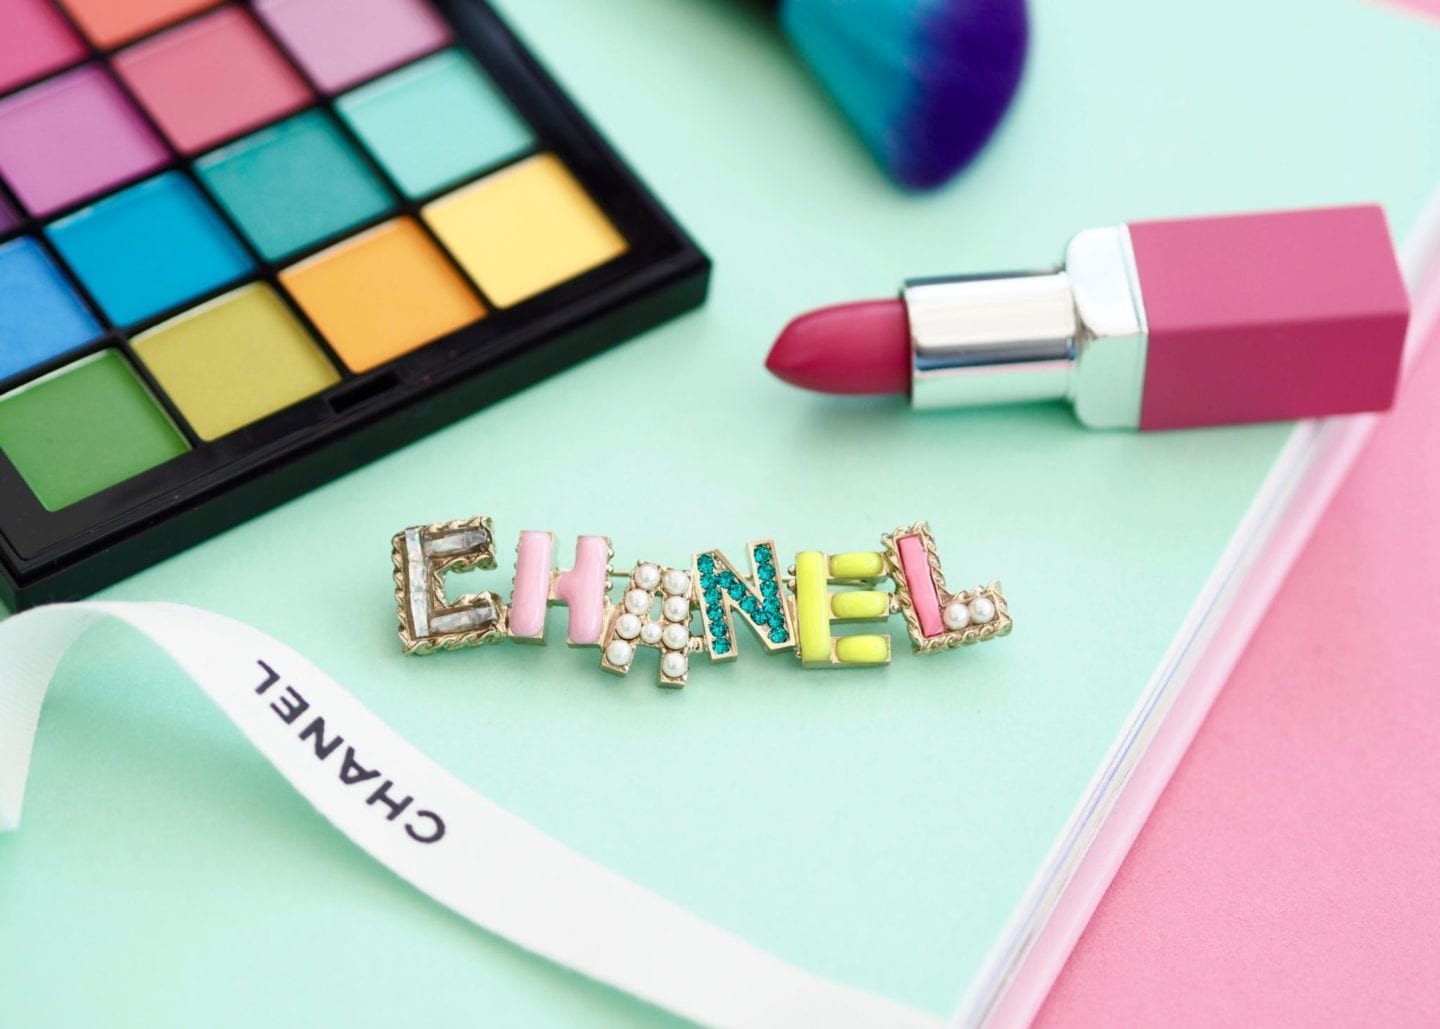 chanel ss17 collection brooch